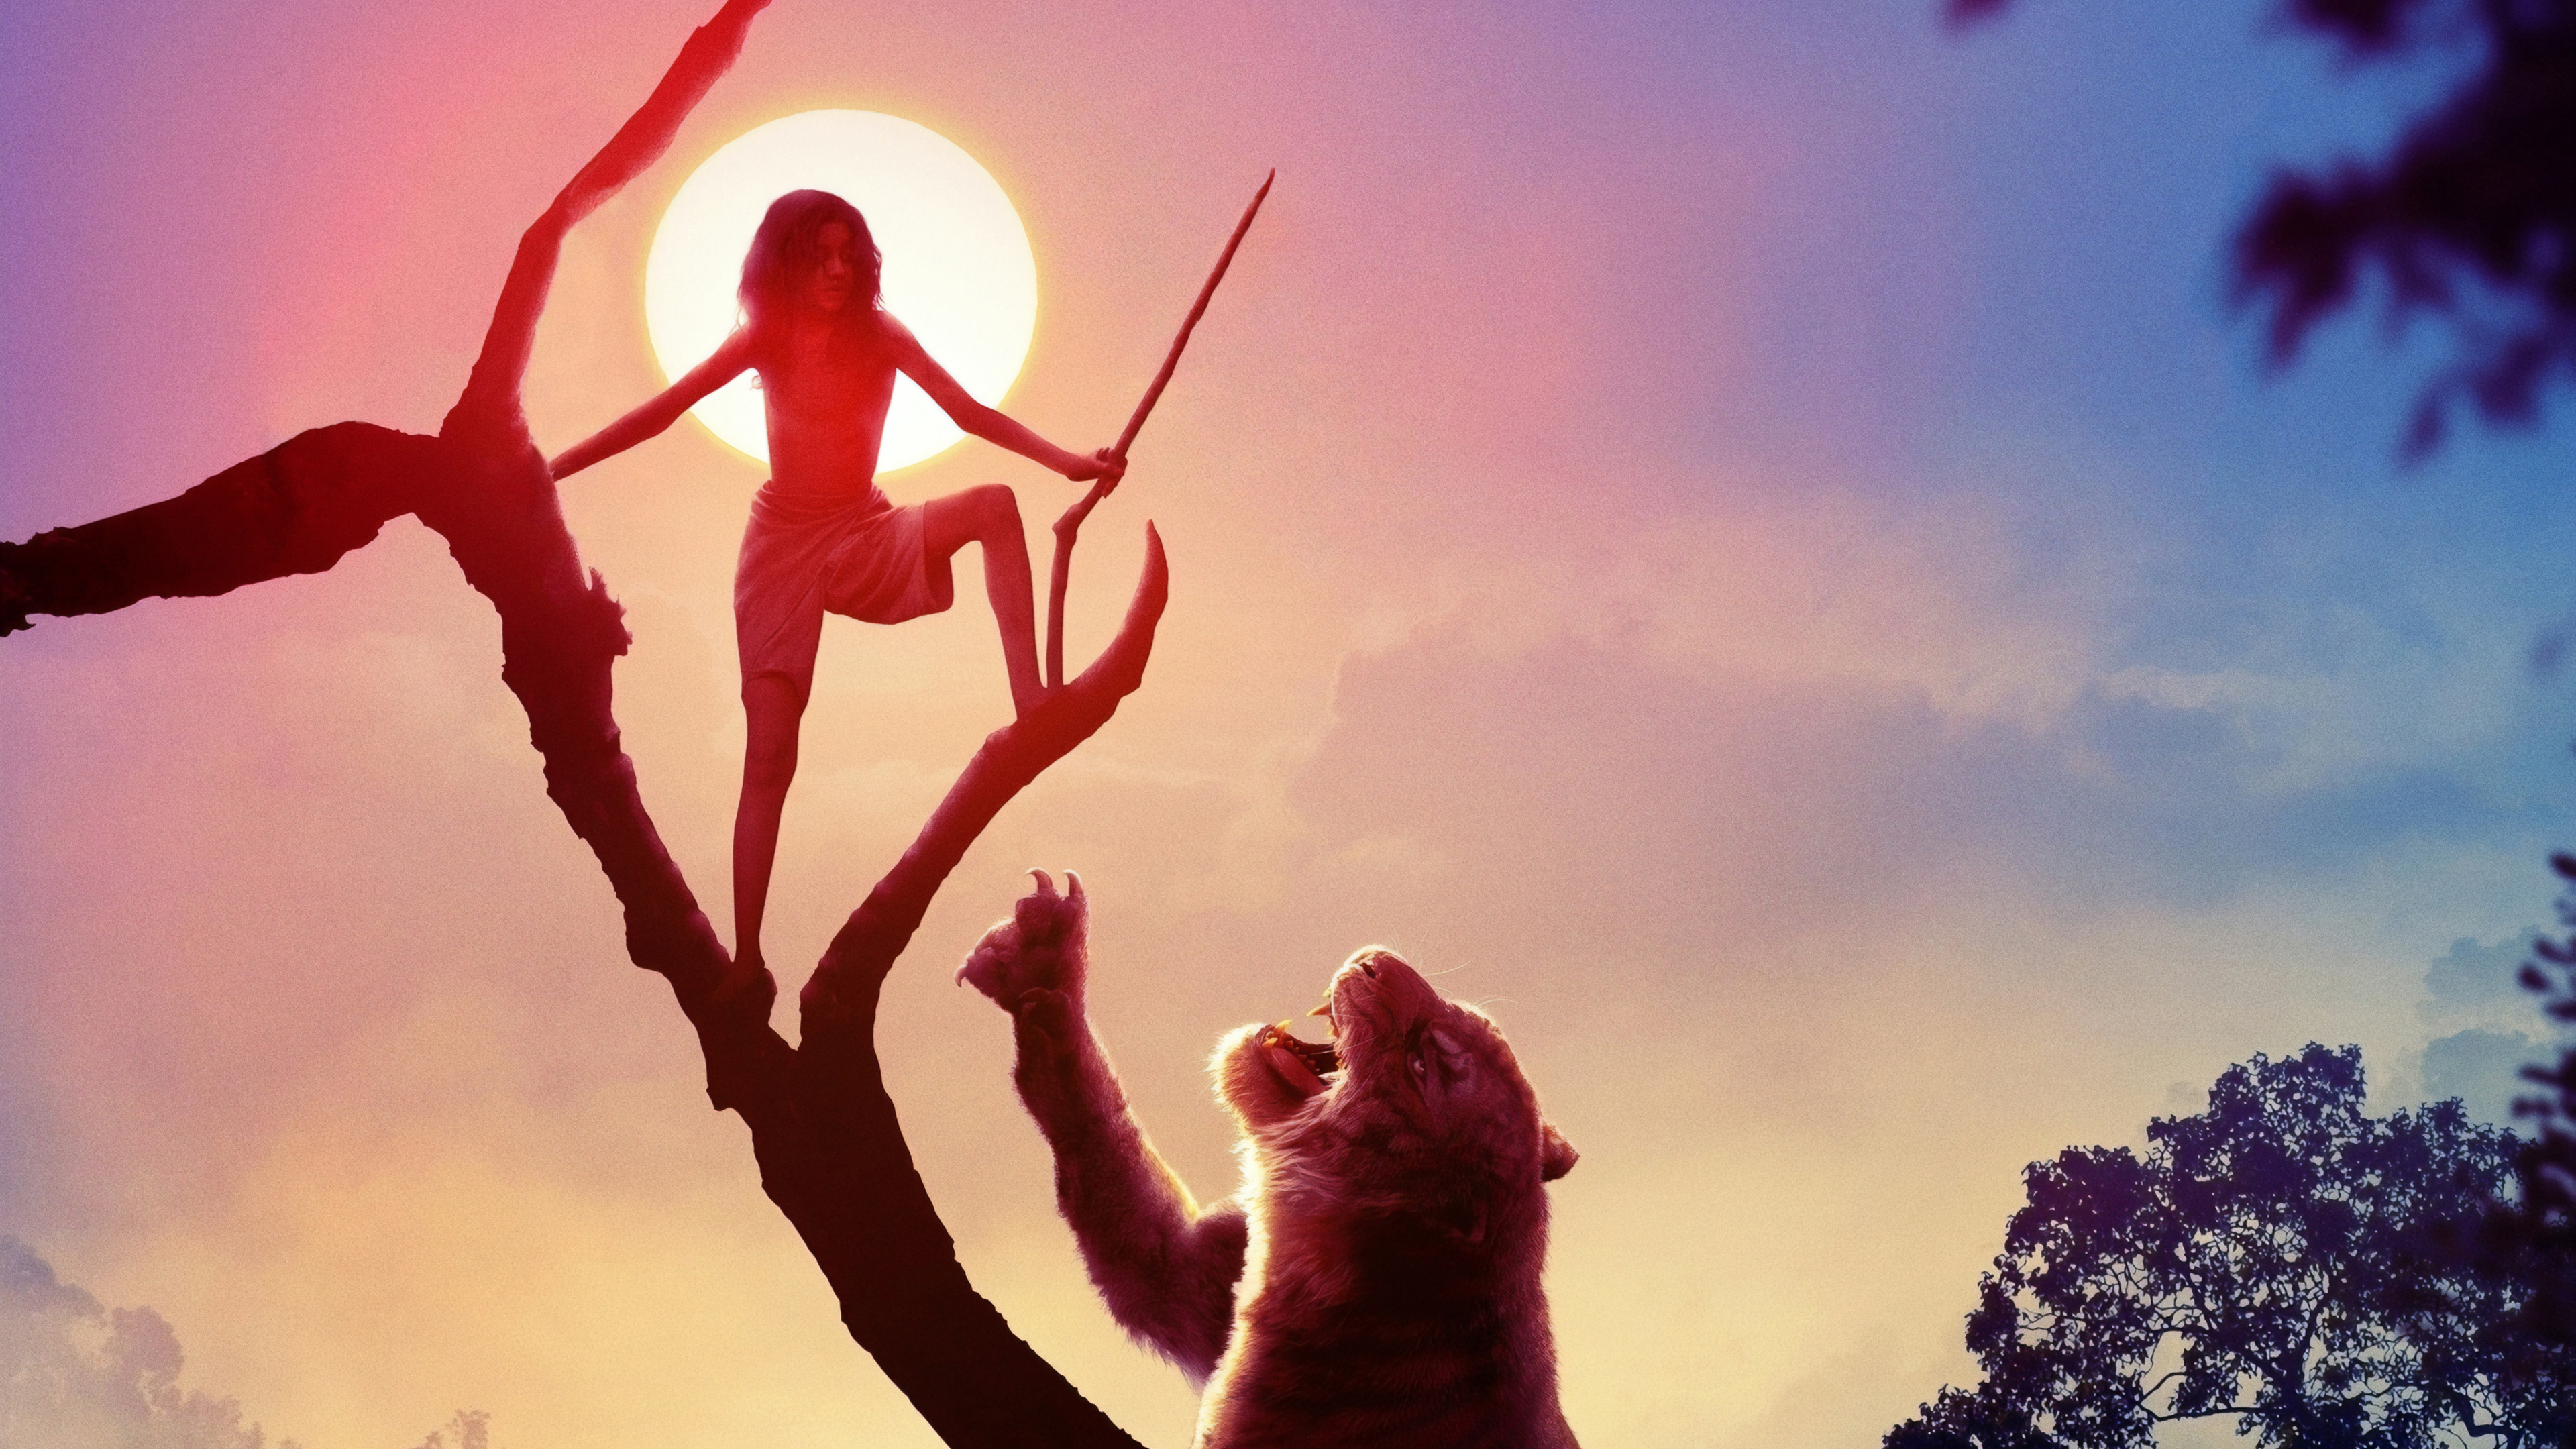 Mowgli Legend Of The Jungle 4k Wallpapers Hd Wallpapers